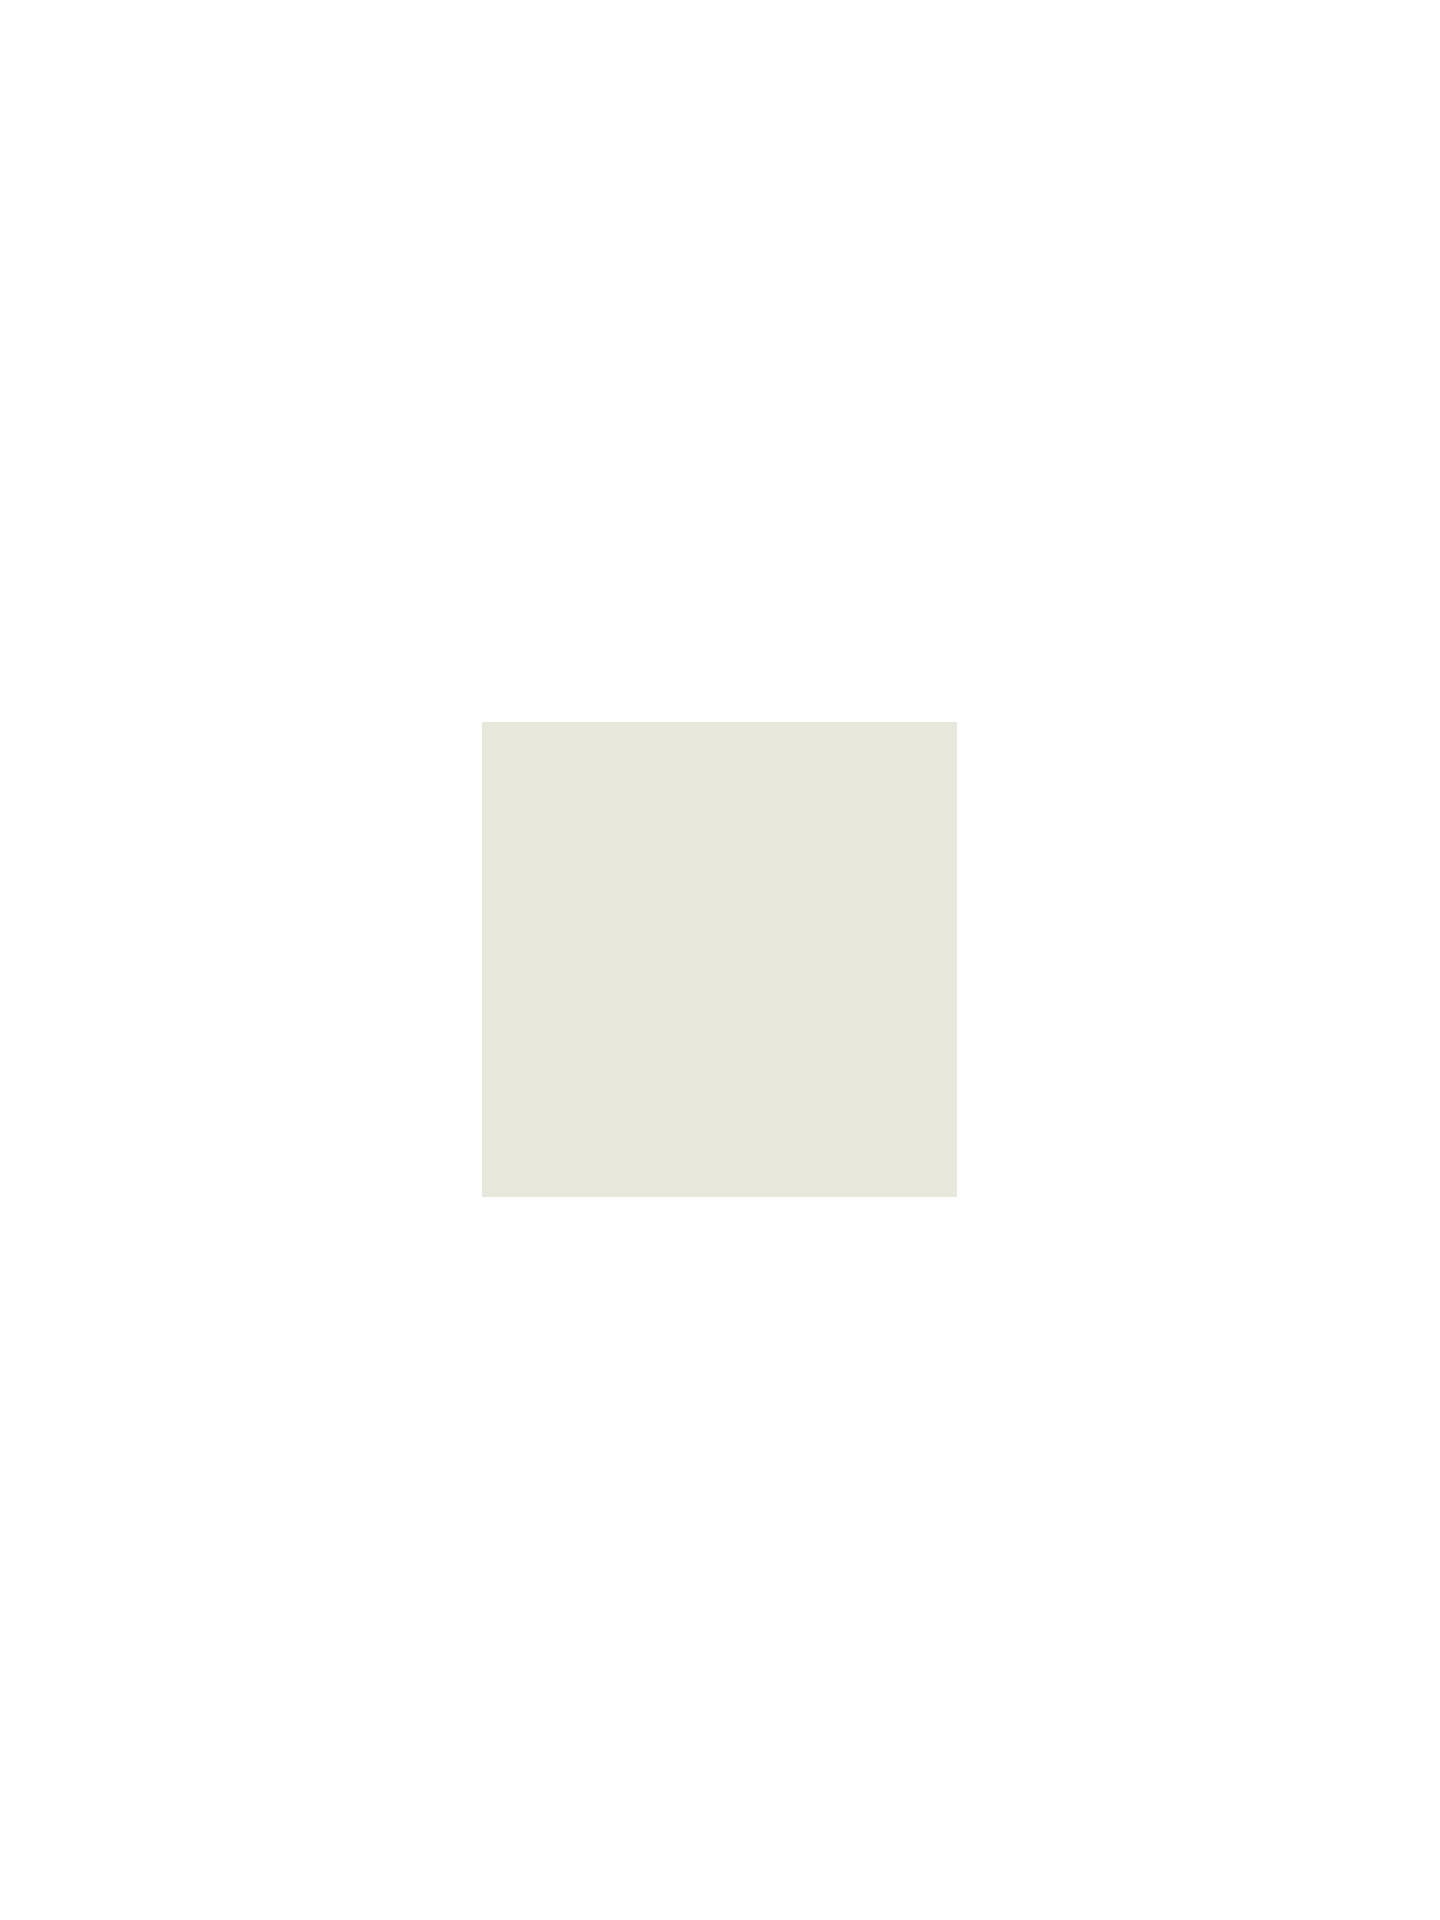 Buy The Little Greene Paint Company Absolute Matt Emulsion Taupes Tester Pot, French Grey Pale (161) Online at johnlewis.com